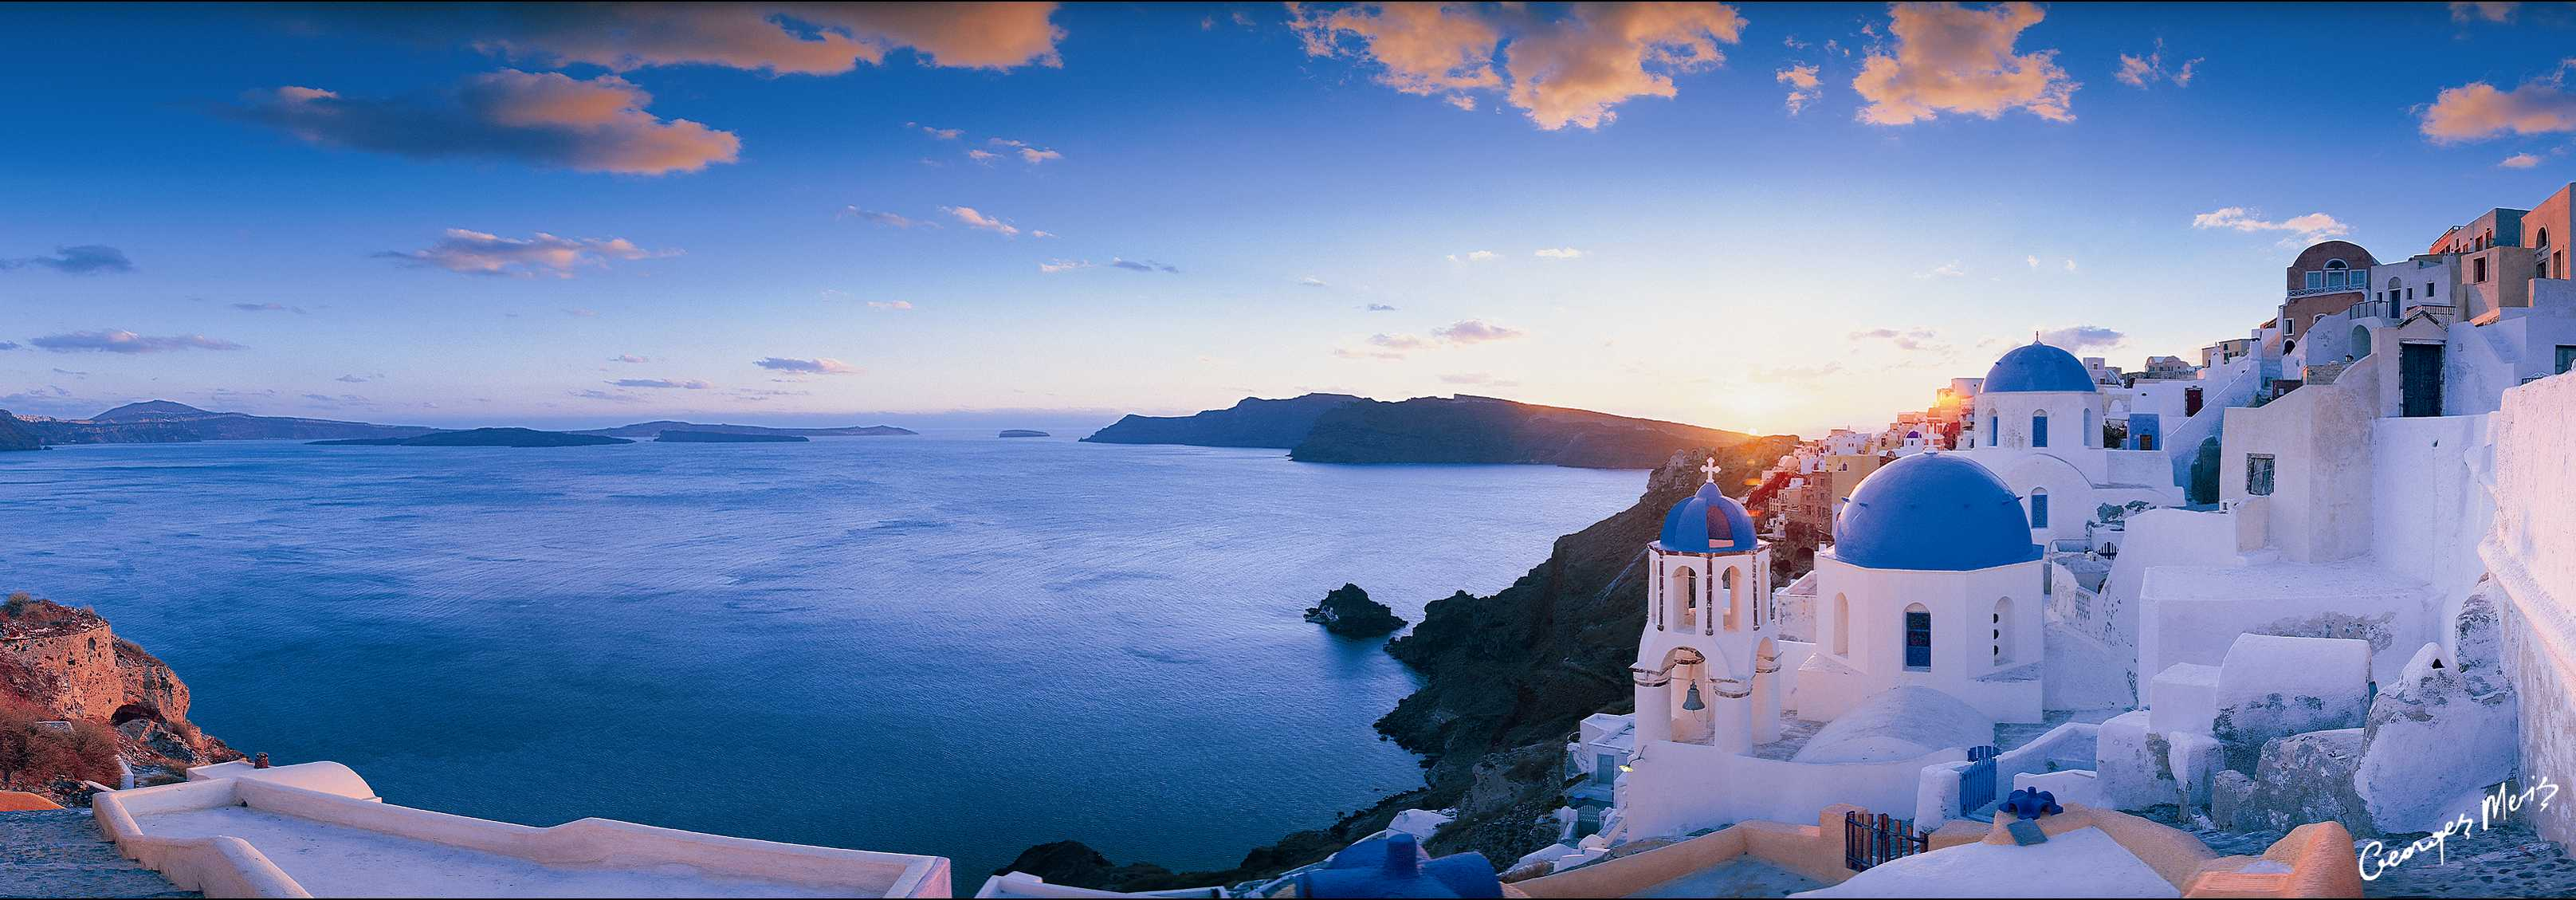 Santorini Wallpapers   Thra Wallpaper Backgrounds 3232x1129